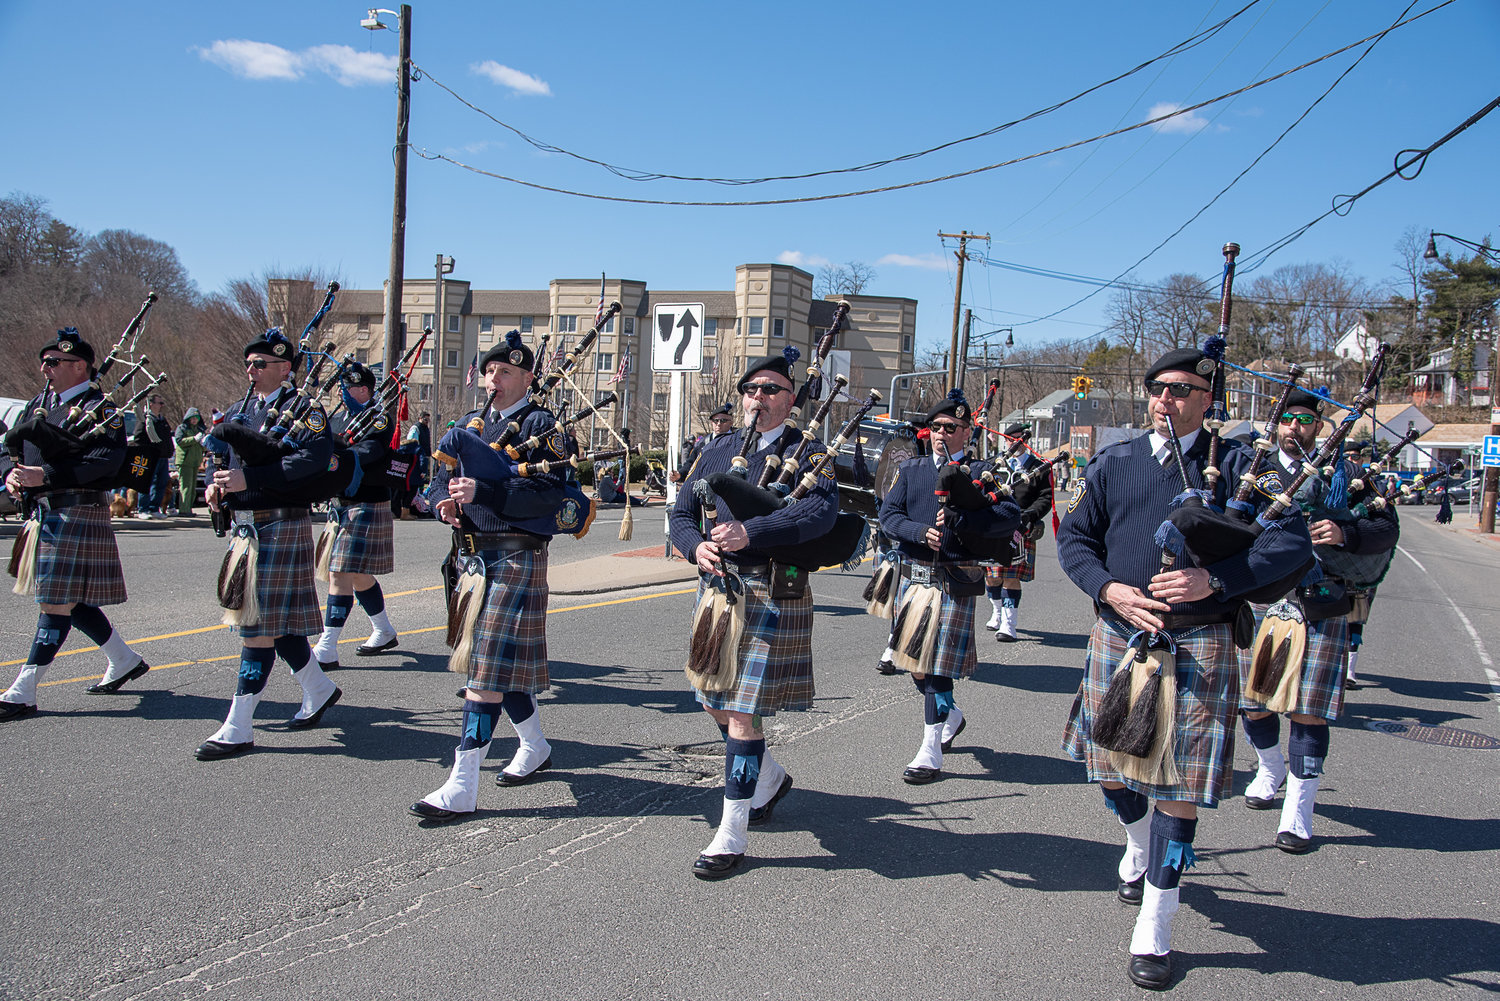 The annual Glen Cove St. Patrick's Day will not be making its way down the streets of Glen Cove this way.